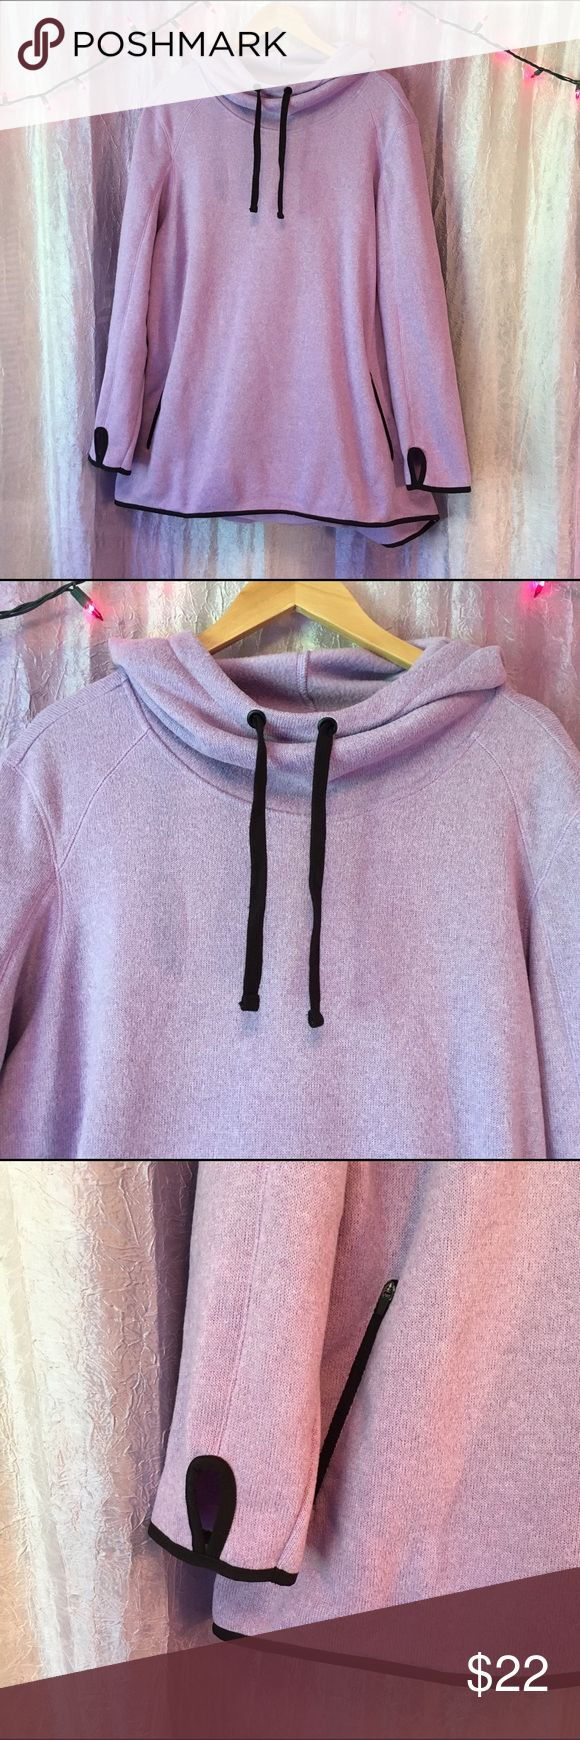 "Old Navy Active Womens Plus Size 3X Purple Hoodie Great condition. Barely used. Pullover with side zip pockets. Gathers at the neck/high necked - to stay cozy. Lovely shade of light lavender with dark brown accent on trim around sleeves and hem. Flat wide dark brown hoodie strings. Cozy and warm. Thin Knit sweater hoodie. Great quality.  Length: 31""  Armpit to Armpit : 25"" Old Navy Jackets & Coats"